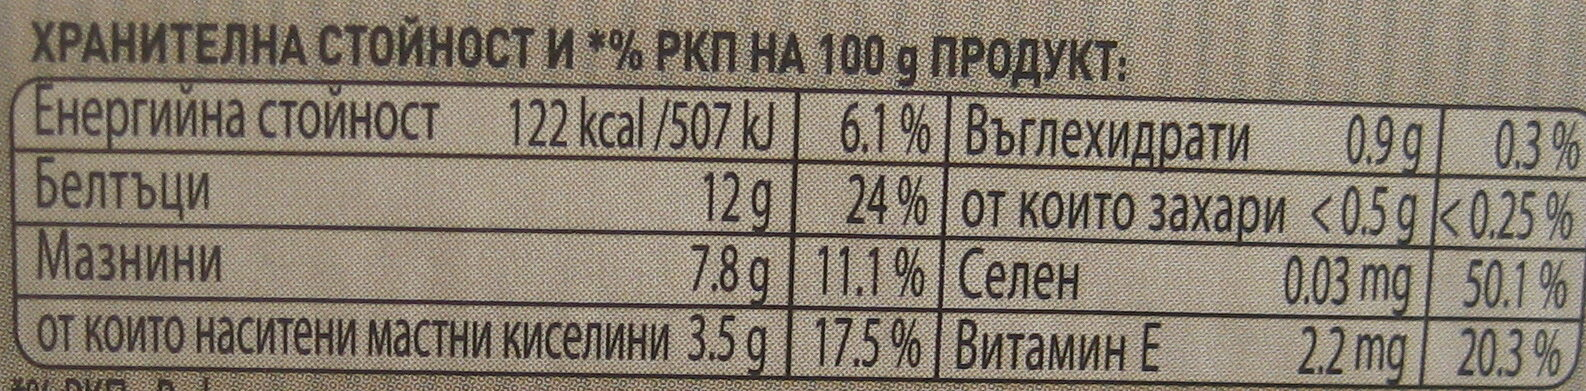 Багрянка кокоши яйца от с. Багрянка - Nutrition facts - bg